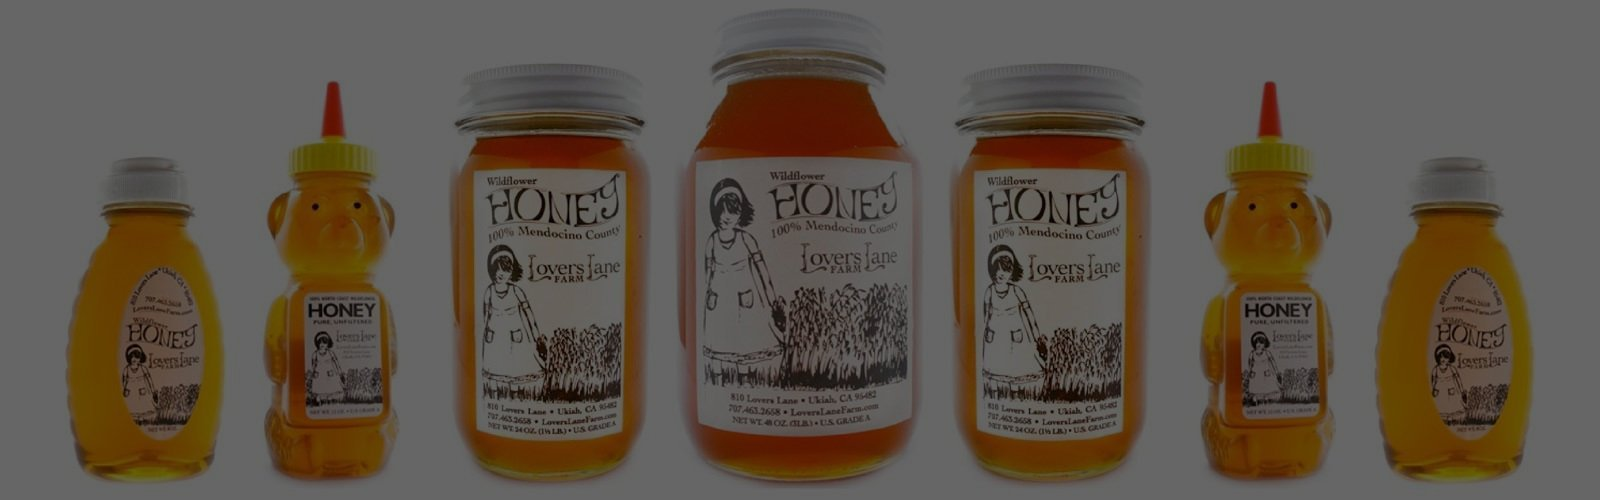 Artisanal Wildflower Honey